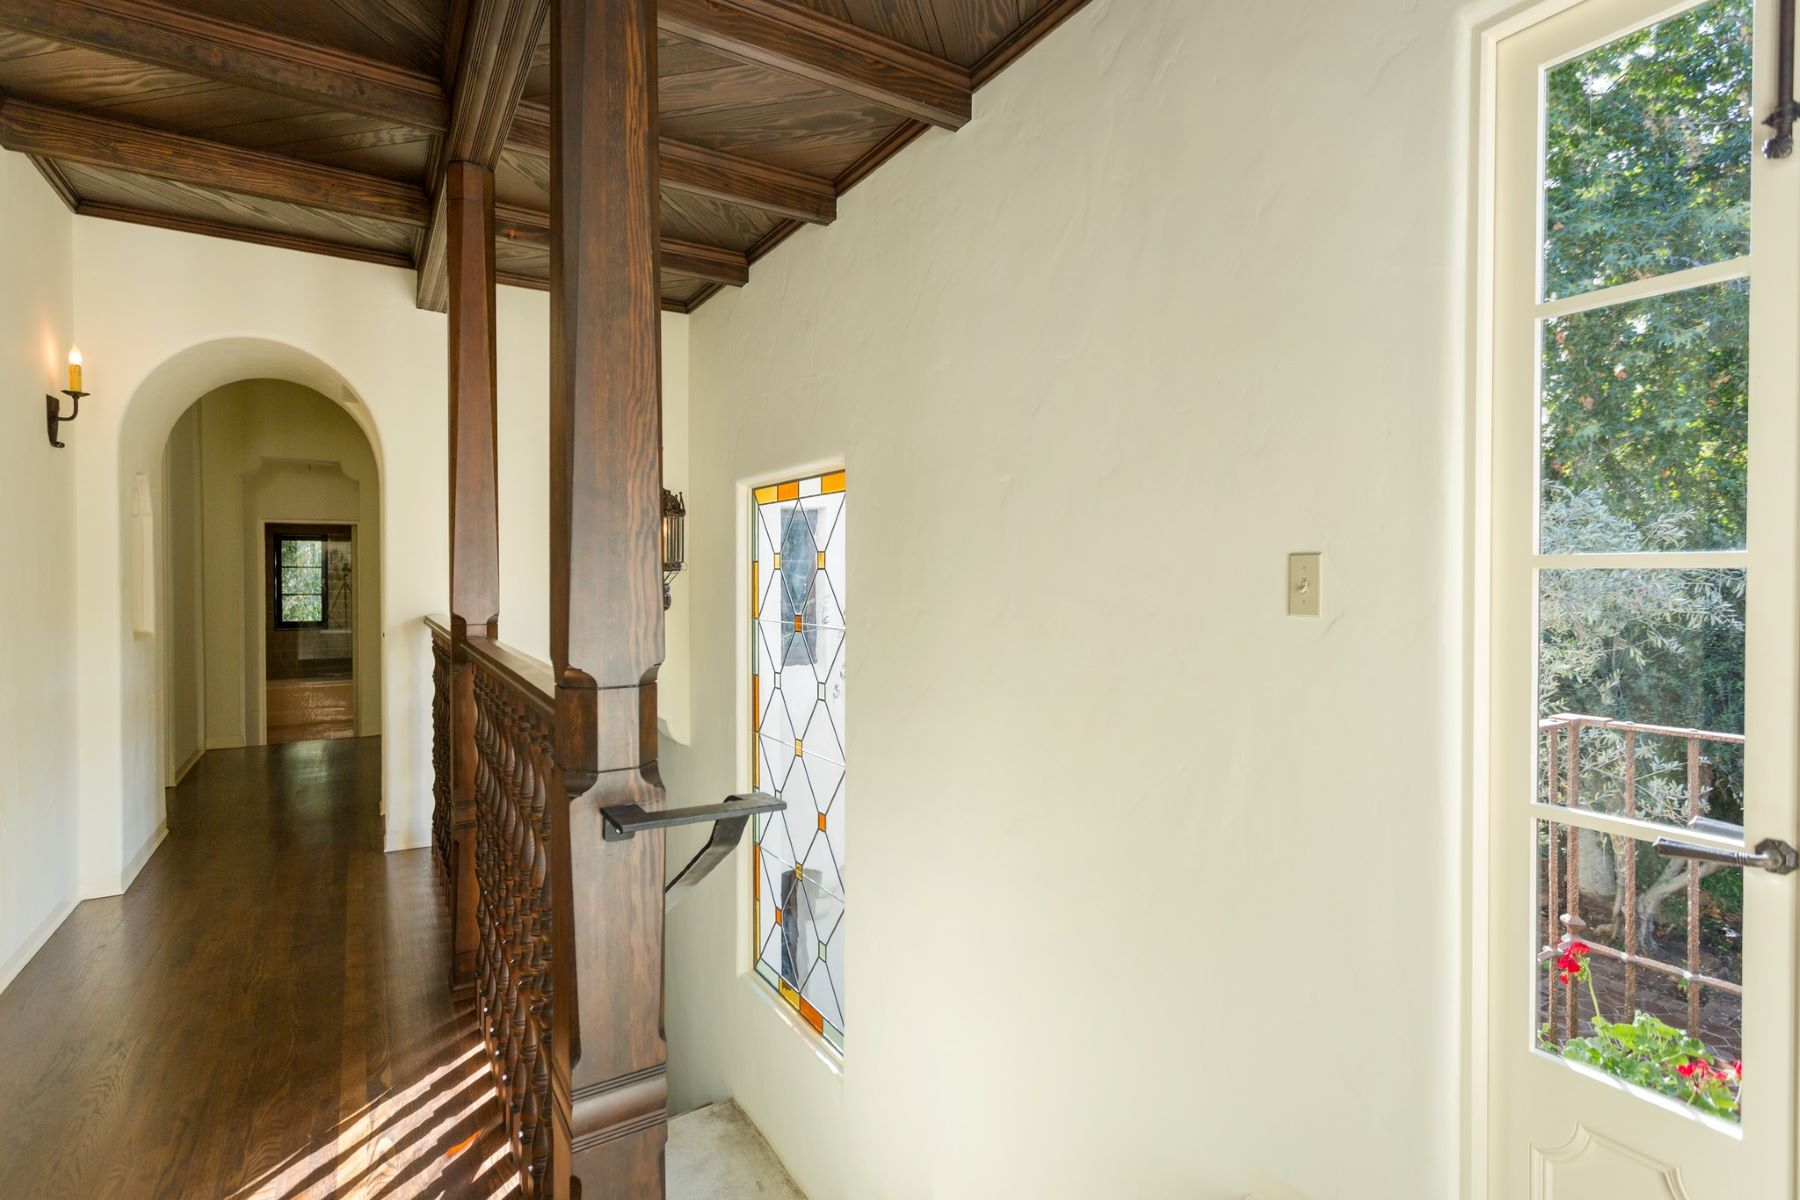 Additional photo for property listing at 715 El Toro Rd  Ojai, California 93023 United States